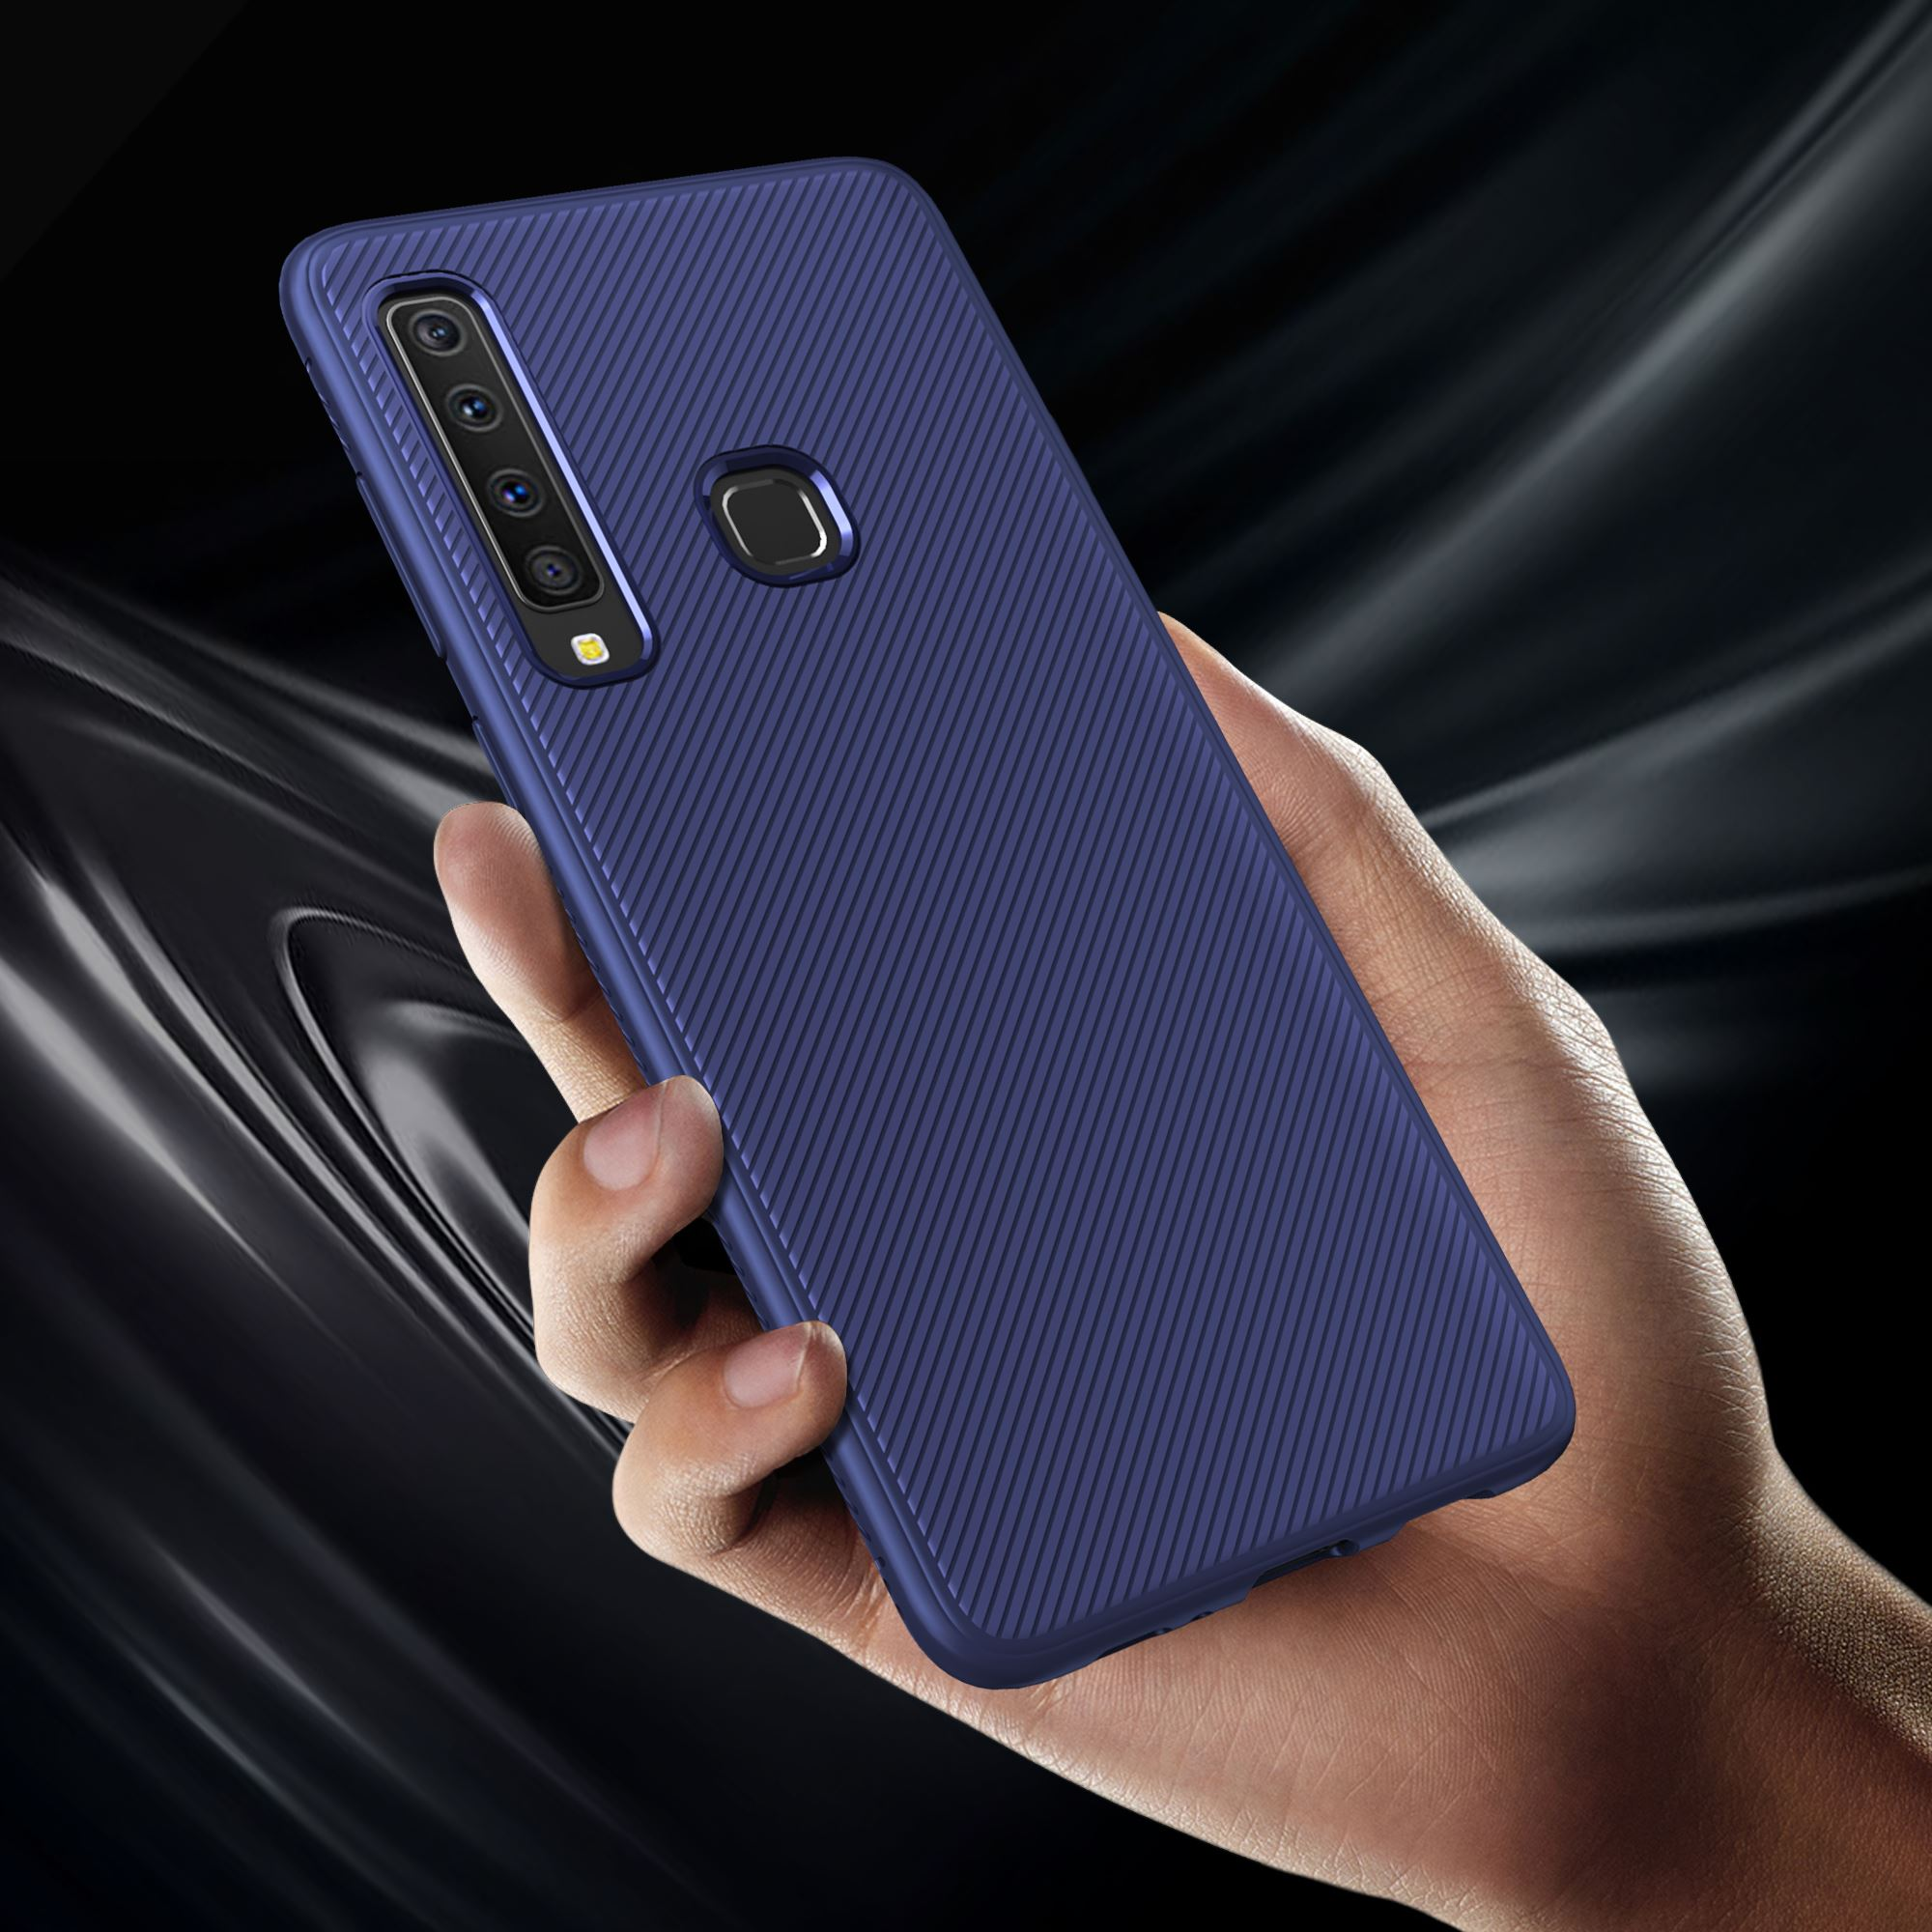 For Samsung Galaxy A9 2018 Case Silicone Carbon Fiber Anti-Slip TPU Soft Funda For Samsung A9 2018 A7 2018 S10 Case Slim Texture